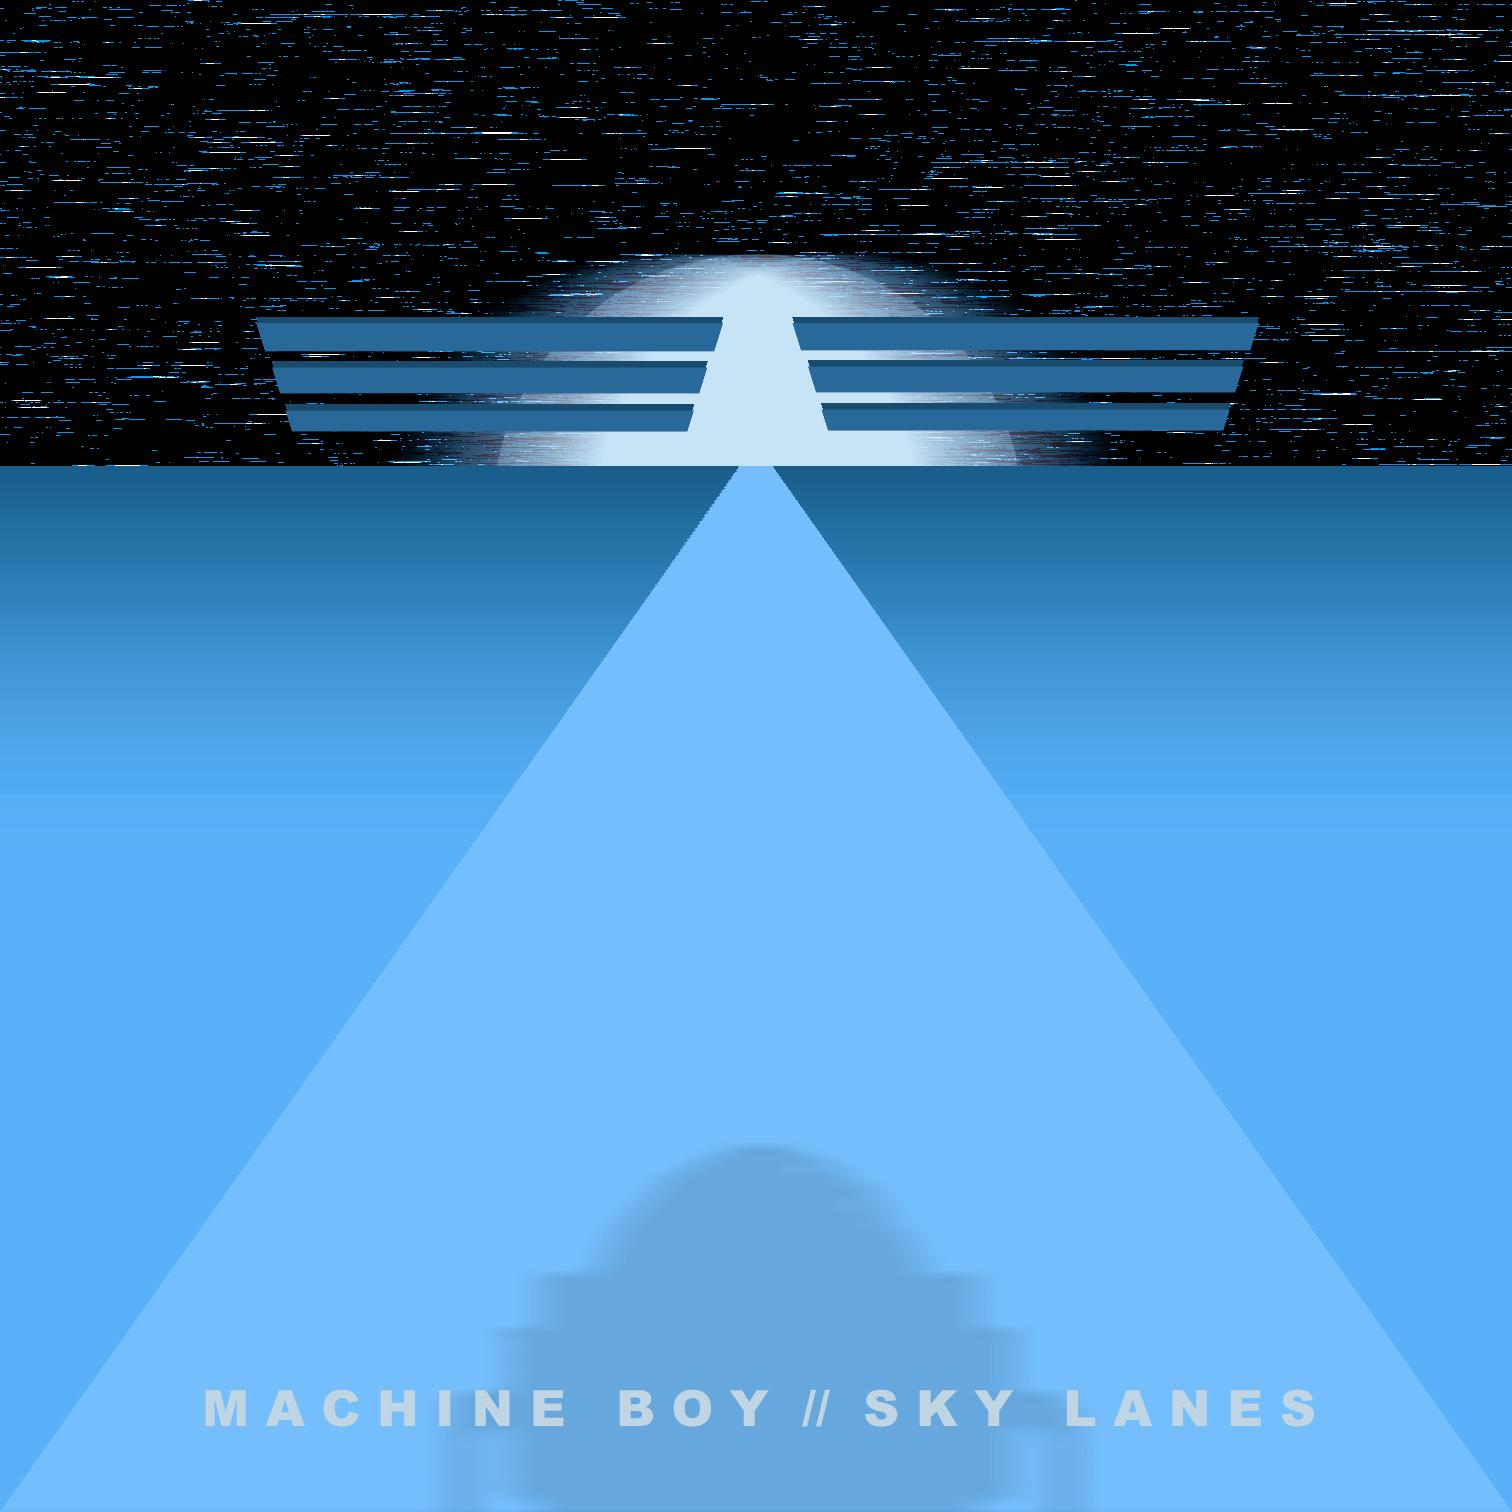 machine boy sky lanes